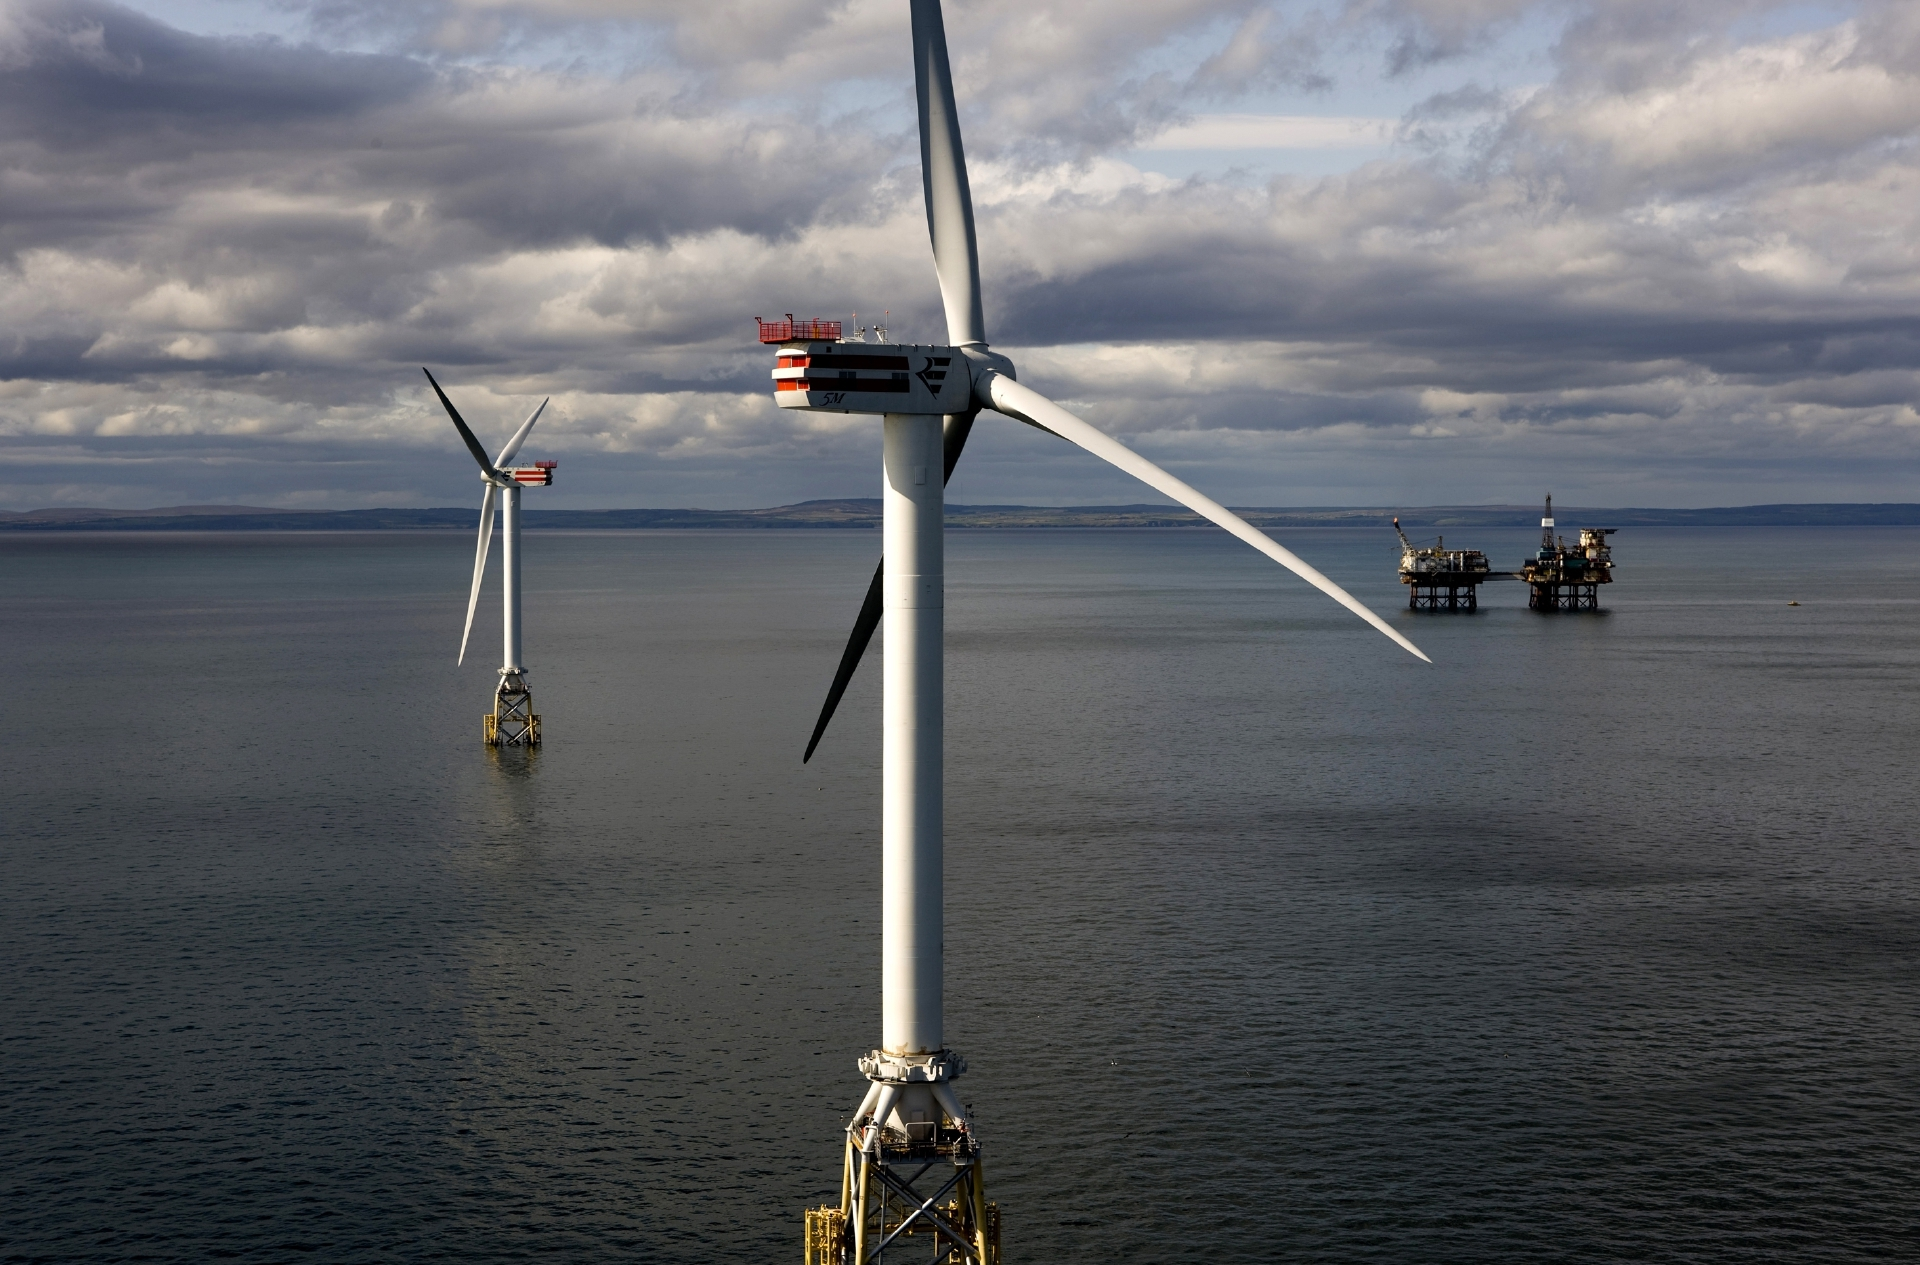 Perth-based SSE has  submitted plans to build a £3 billion Beatrice wind farm in the Moray Firth